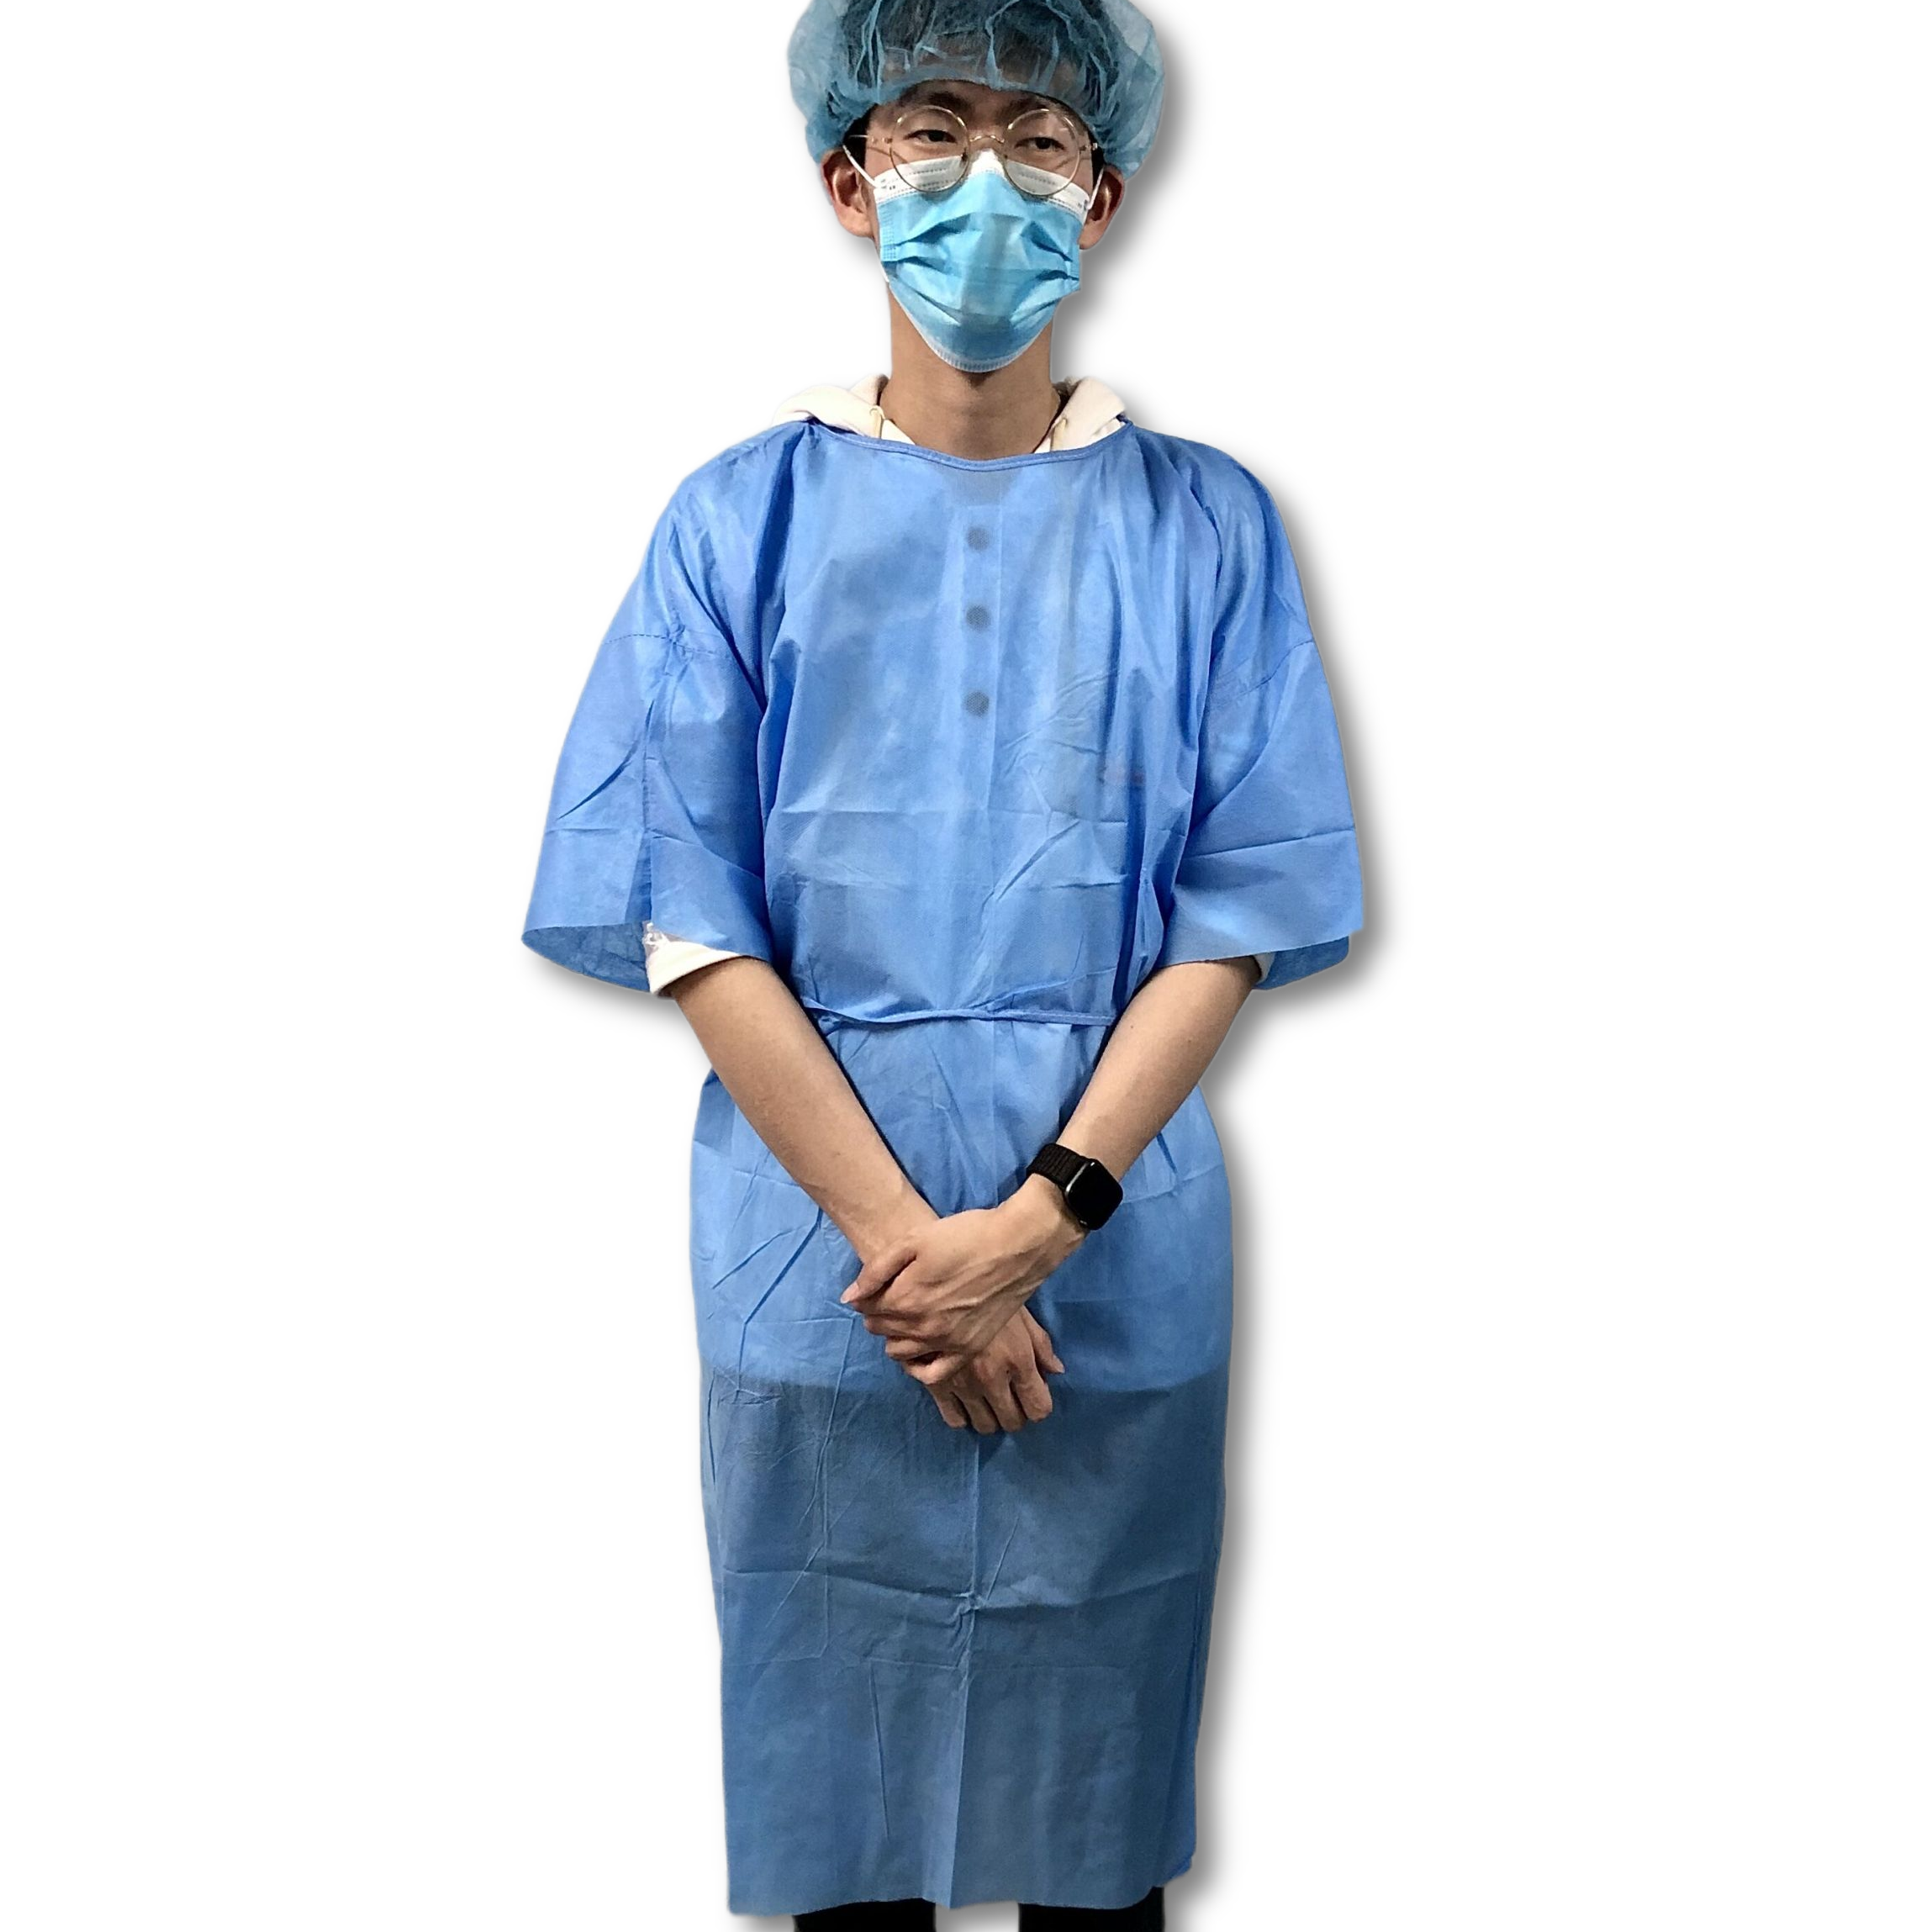 Blue Scrub Suits Non Woven Nursing Uniforms Waterproof And Easy-breath with Short Sleeves - KingCare   KingCare.net